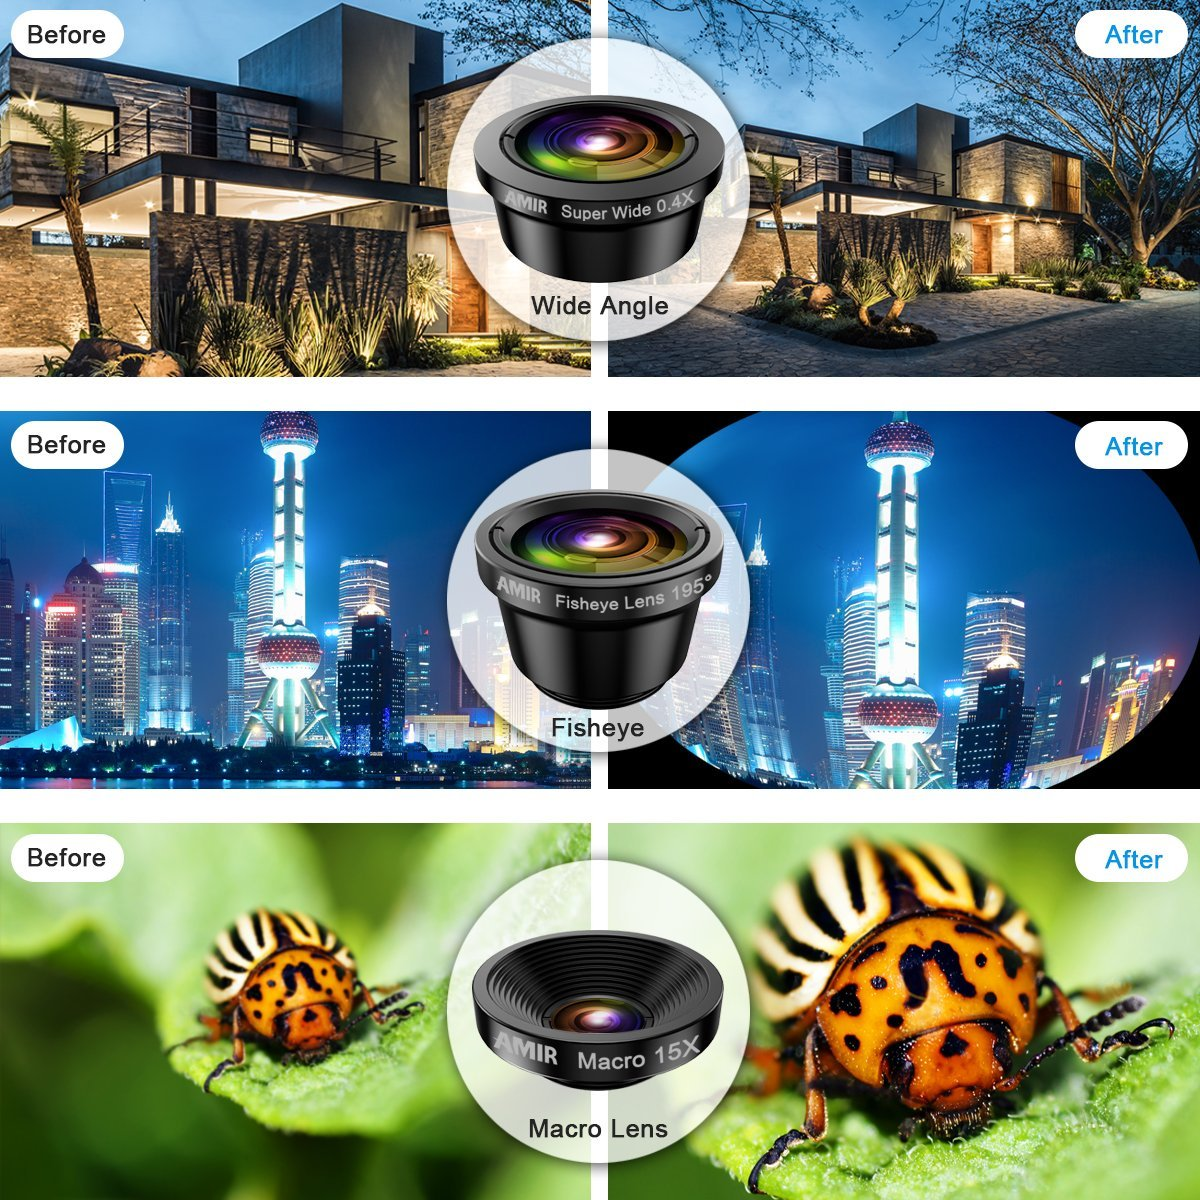 [Upgraded] AMIR For iPhone Camera Lens, 0.4X Super Wide Angle Lens + 195° Fisheye Lens & 15X Macro Lens, 3 IN 1 Cell Phone Camera Lens For iPhone X, iPhone 8/7 Plus, Samsung, Other Smartphones by AMIR (Image #5)